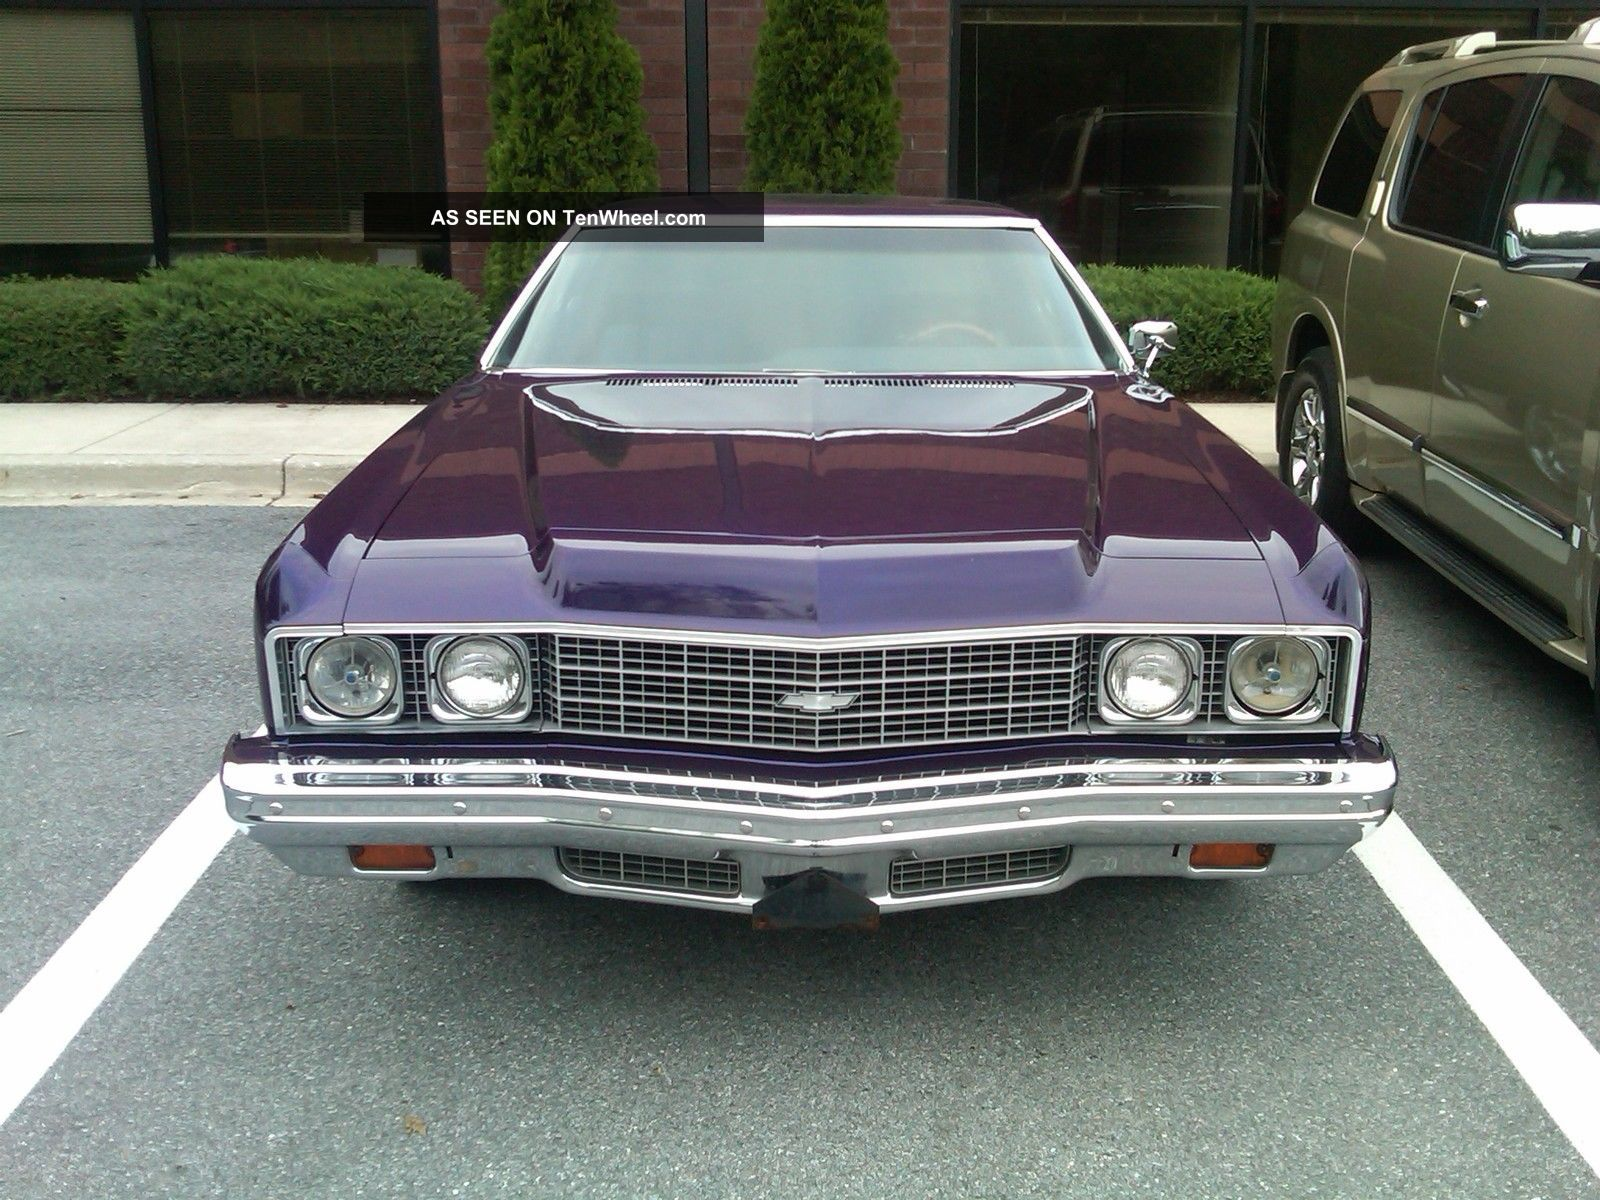 1973 Chevy Impala Custom Coupe Candy Purple Paint